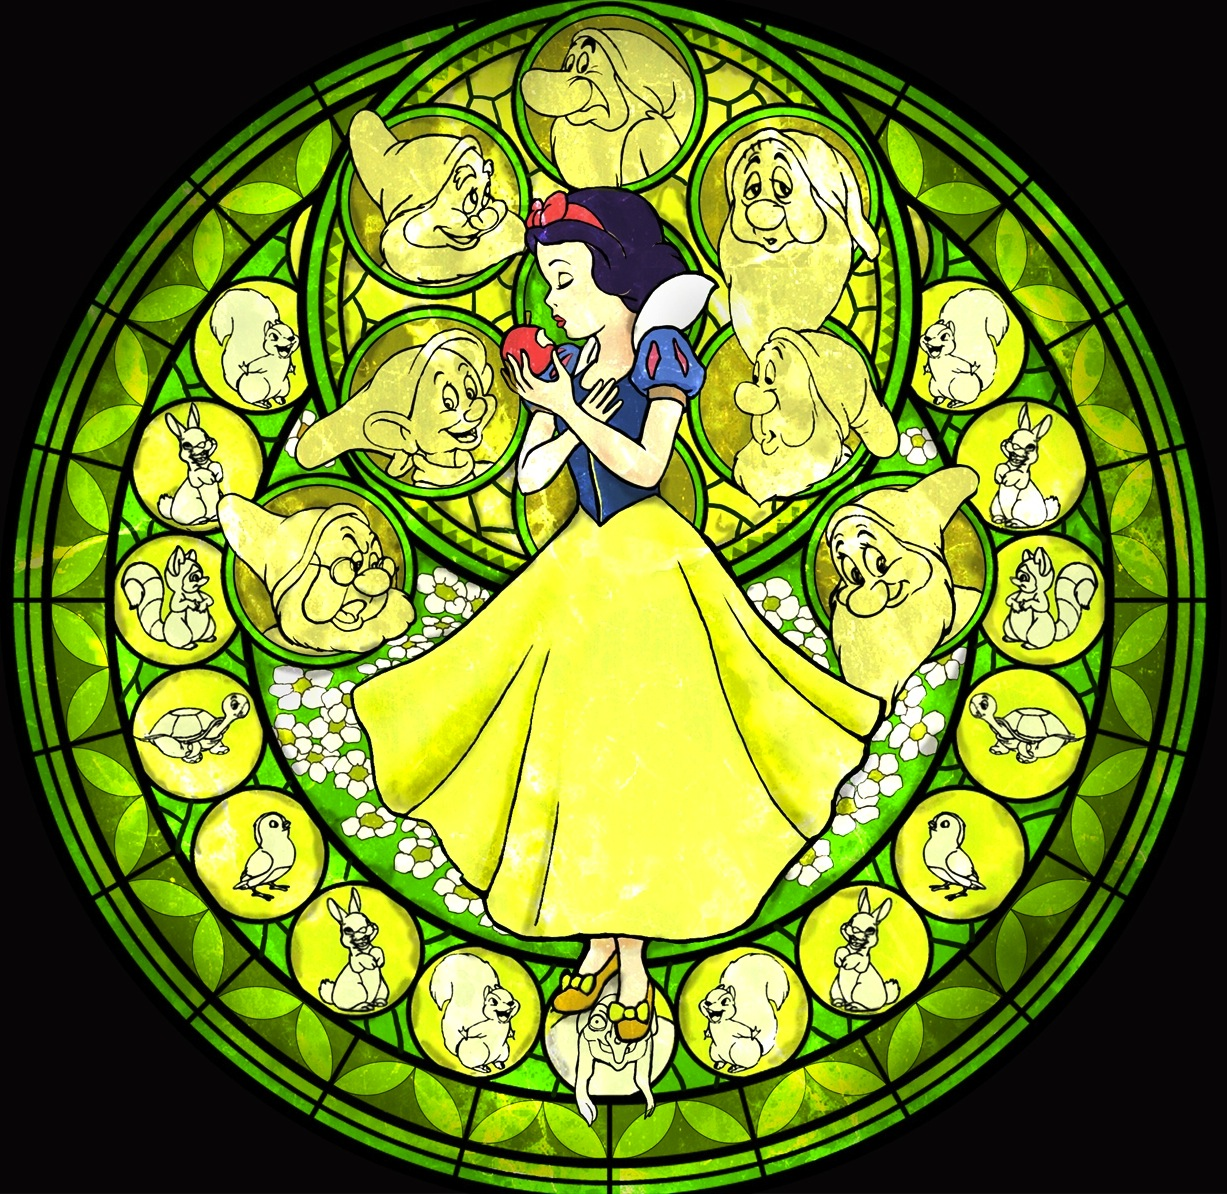 disney princess images snow white stained glass hd. Black Bedroom Furniture Sets. Home Design Ideas